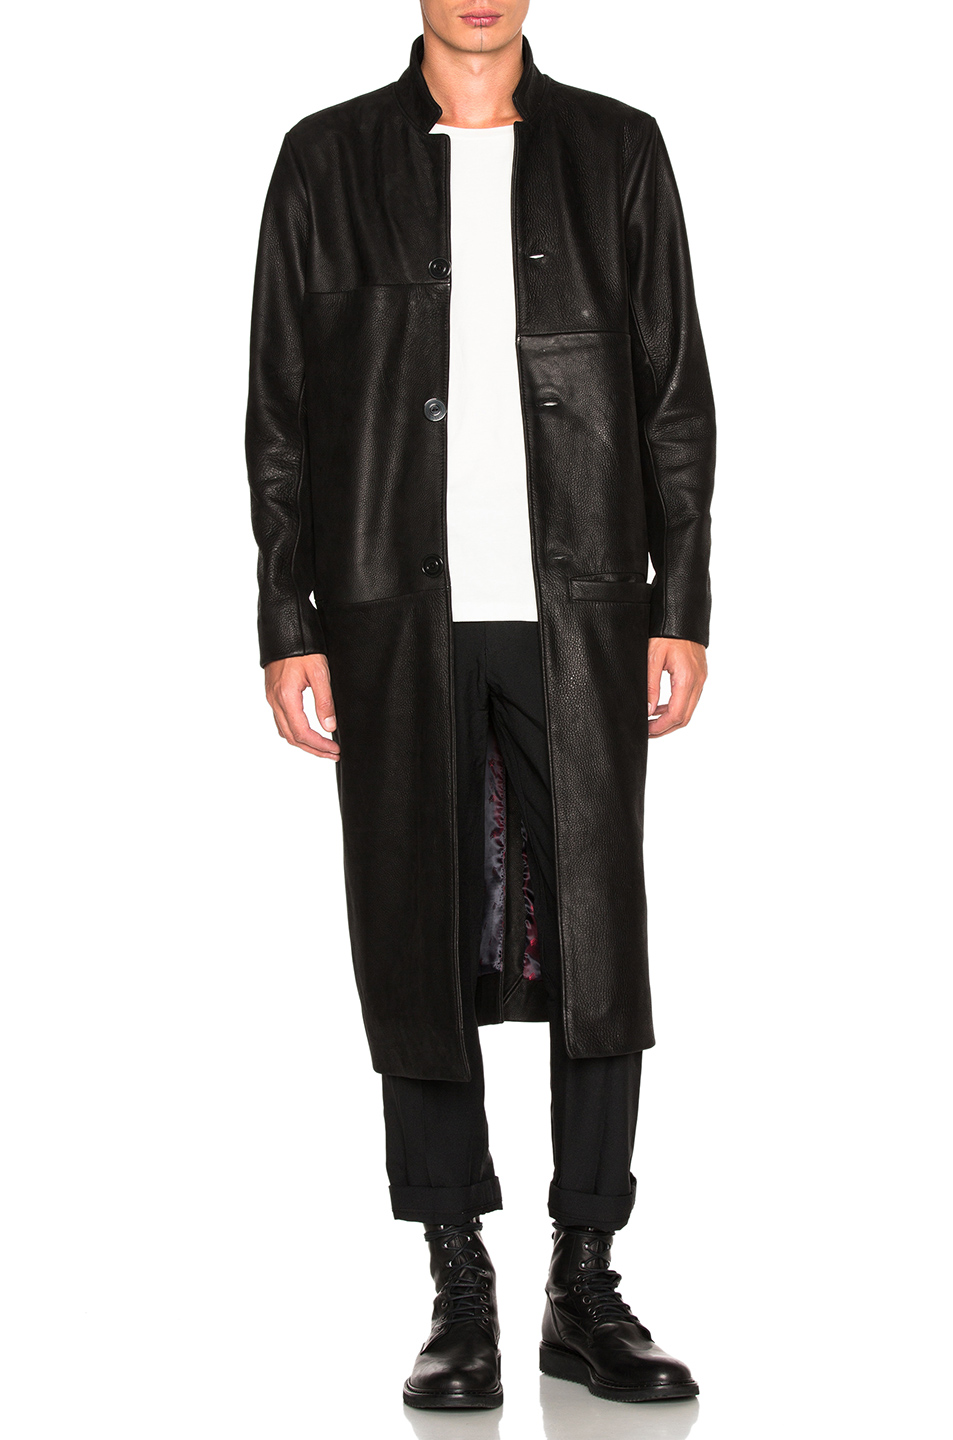 Blackfist Leather Trench in Black